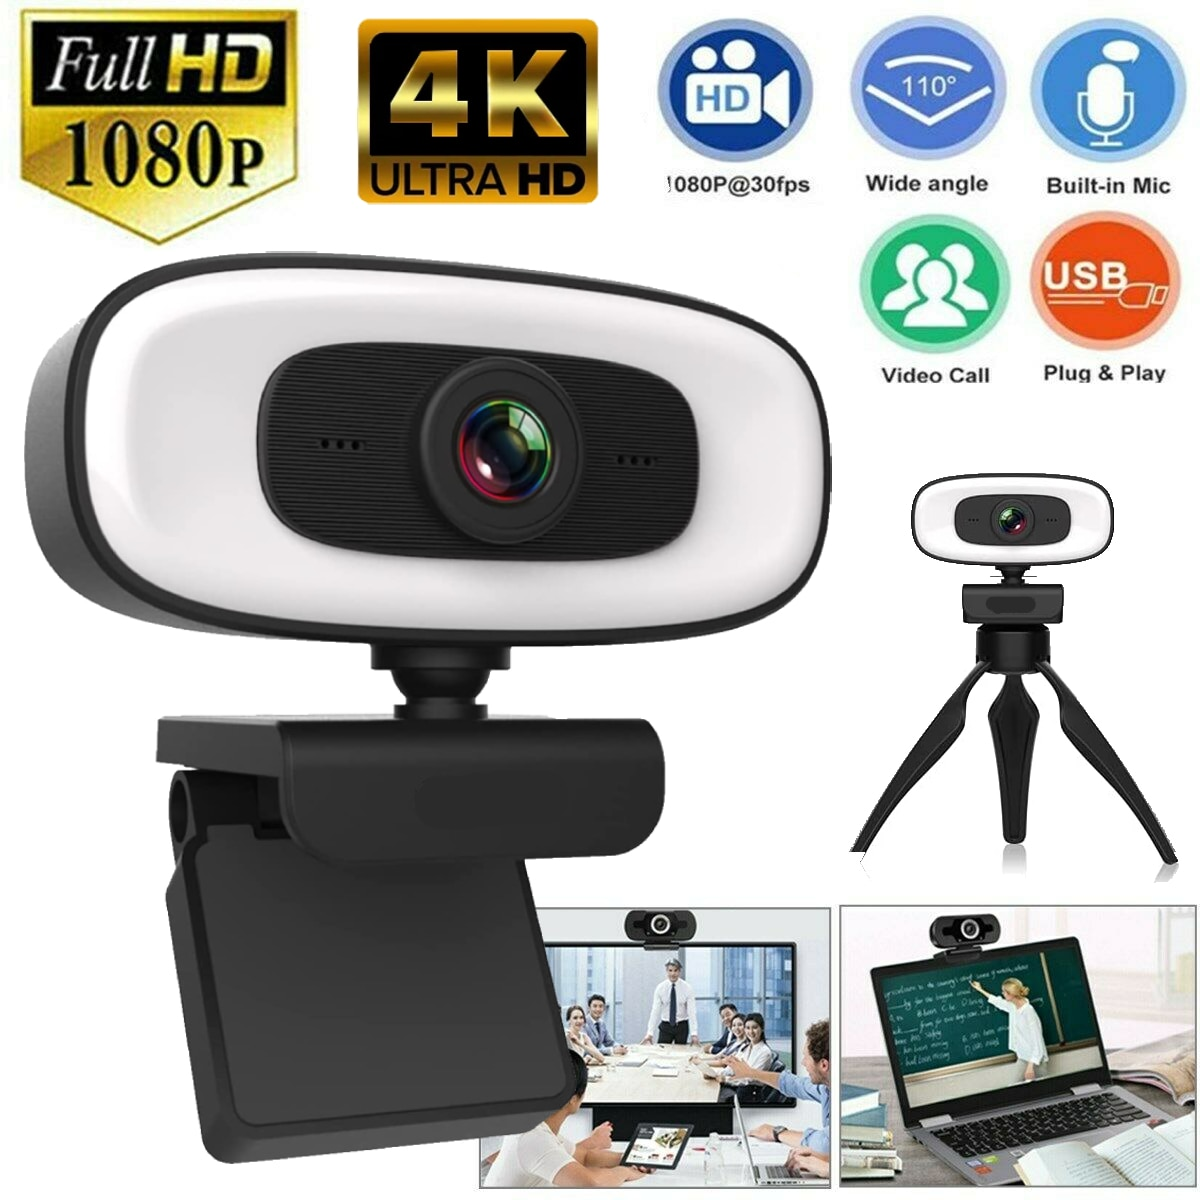 4K Webcam PC Laptops Portable Webcam Live Streaming Flexible Web Cam 1080p Web Camera For Computer With Microphone Full HD